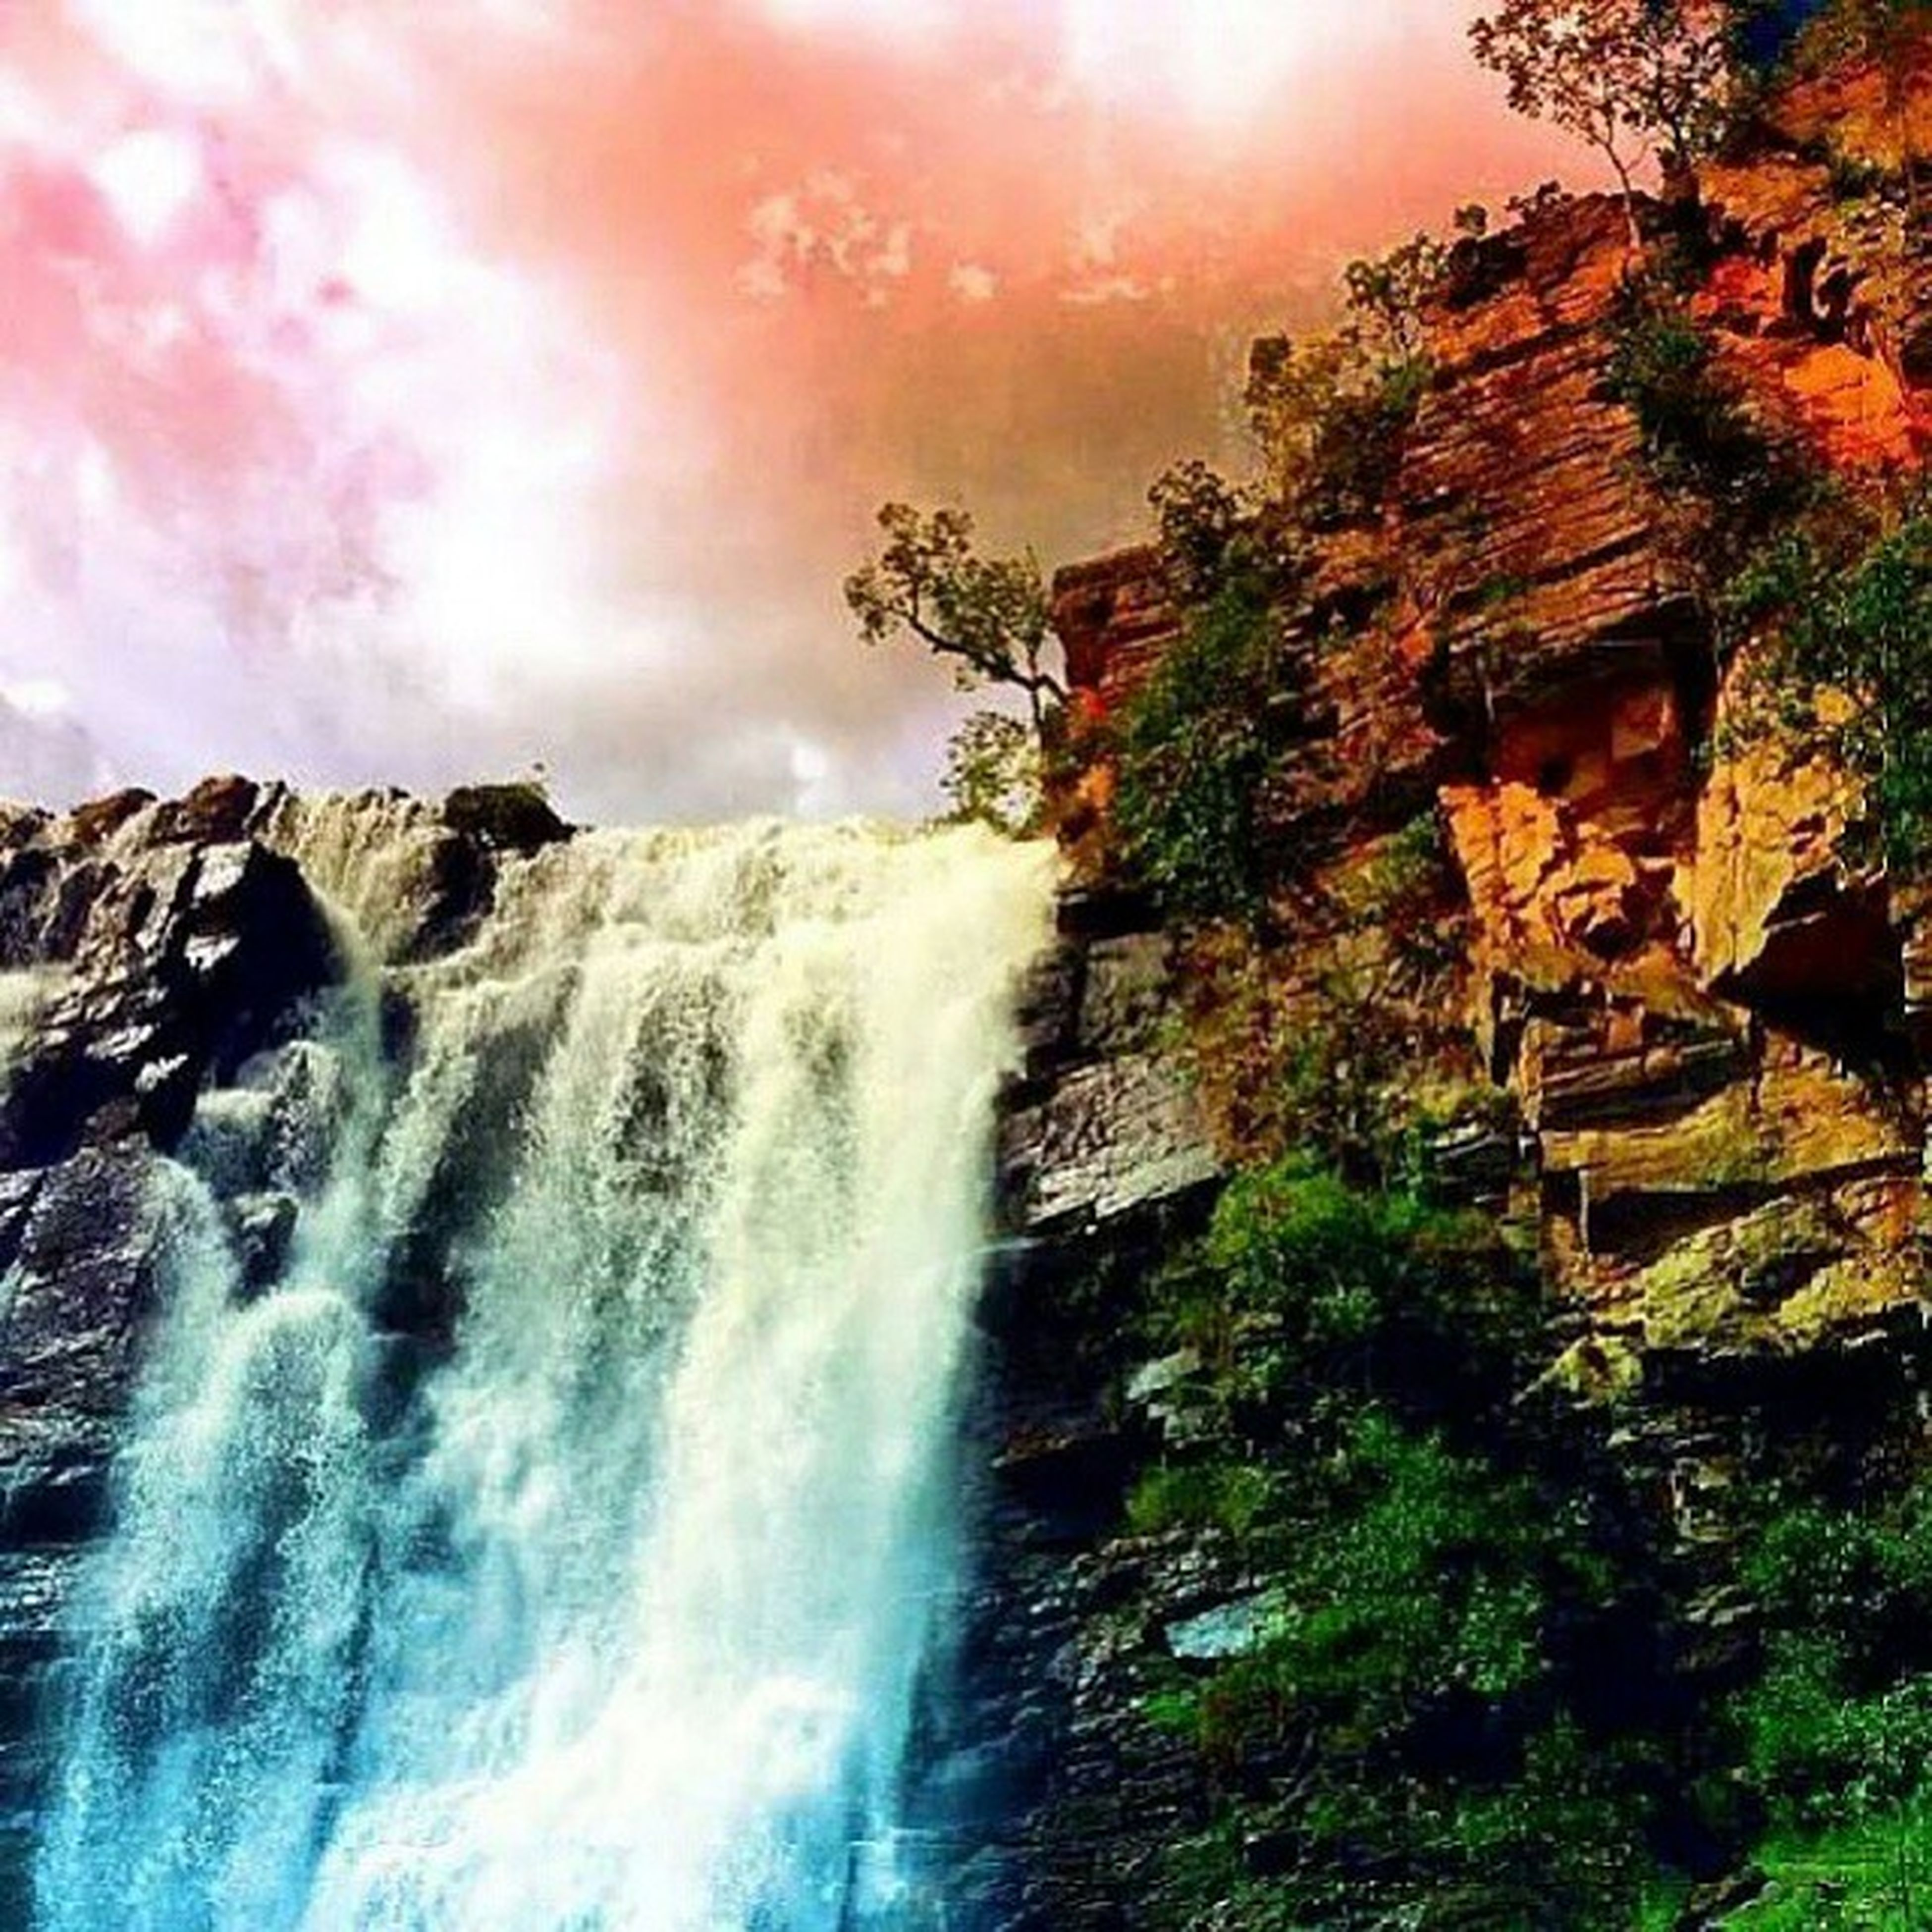 water, scenics, beauty in nature, rock - object, nature, waterfall, tree, sky, flowing water, tranquil scene, motion, rock formation, tranquility, long exposure, idyllic, growth, flowing, cloud - sky, plant, outdoors